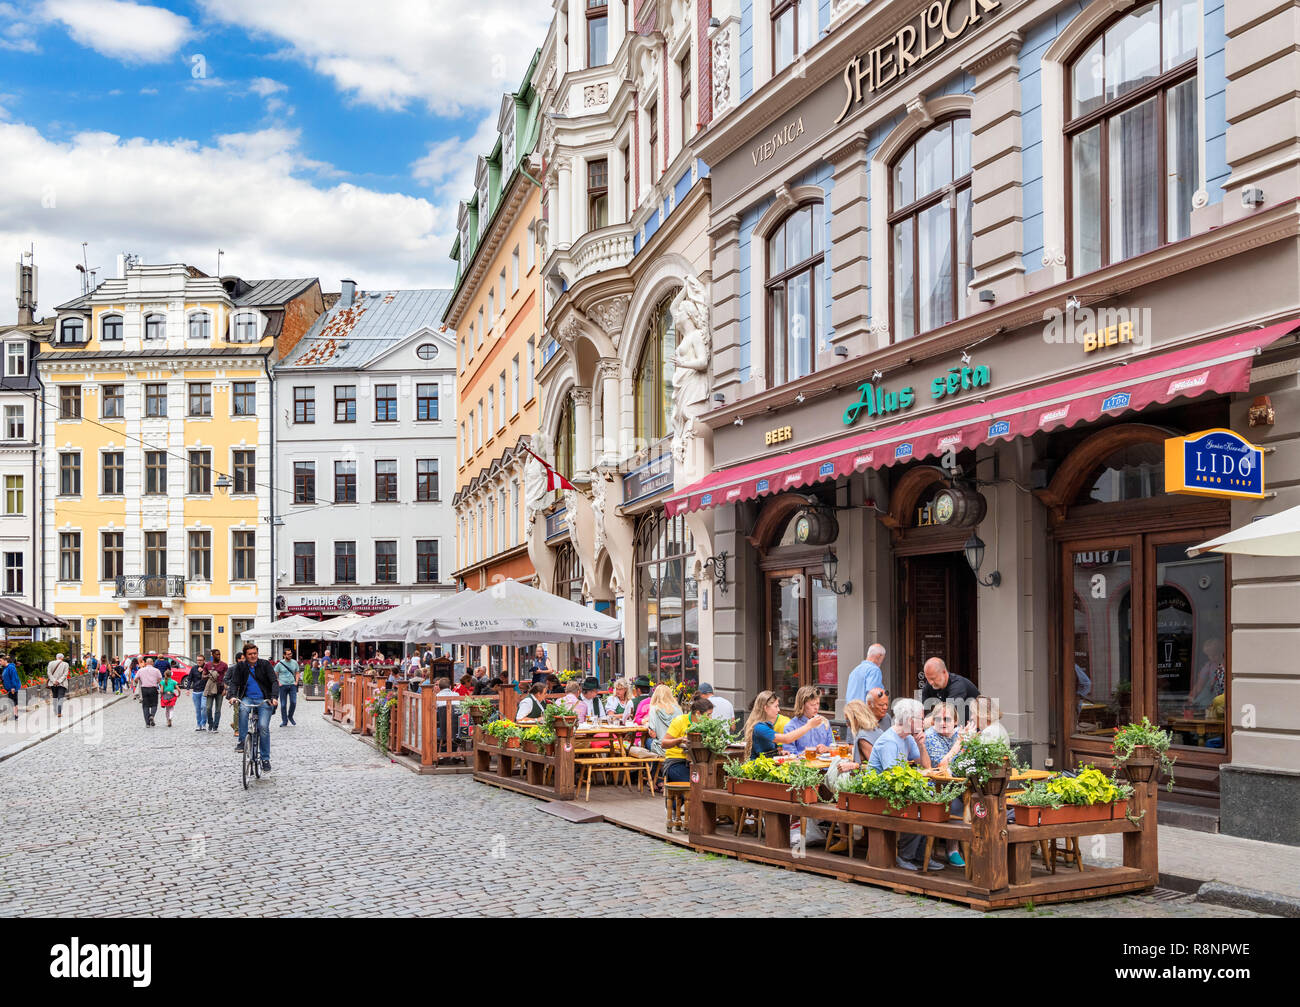 Cafes and bars on Mazā Monētu Iela in the Old Town, Vecriga (Old Riga), Riga, Latvia - Stock Image